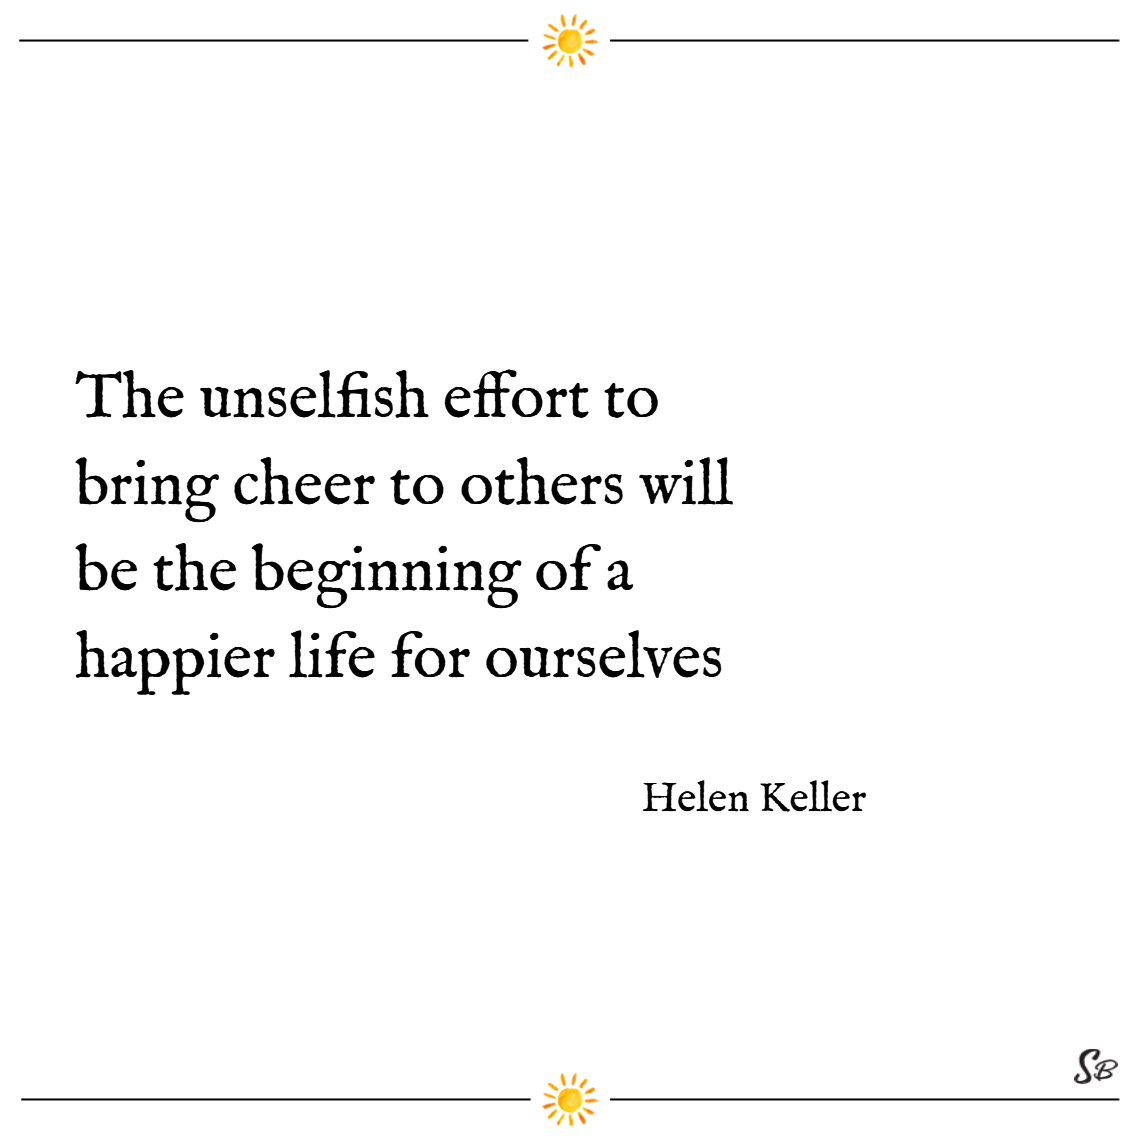 The unselfish effort to bring cheer to others will be the beginning of a happier life for ourselves. – helen keller